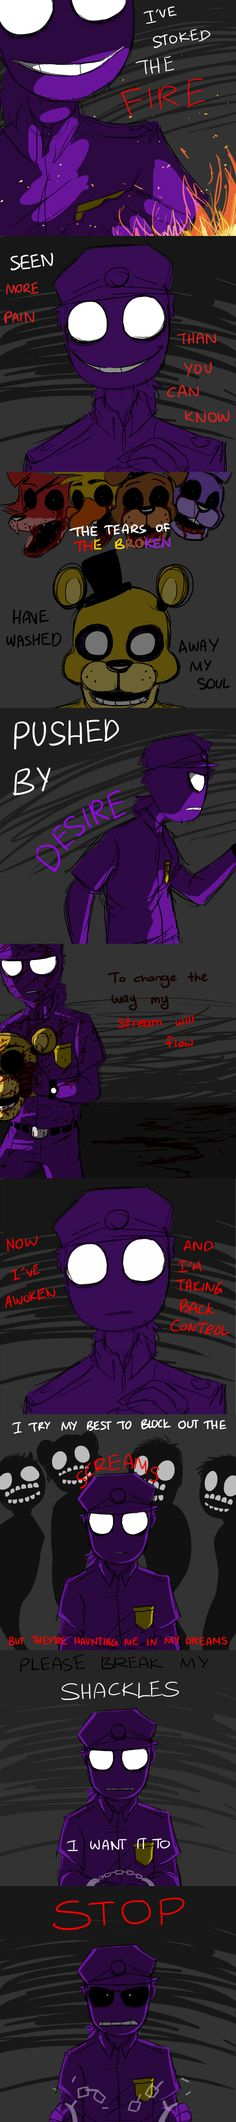 I remember this one :( - Purple Guy FNAF